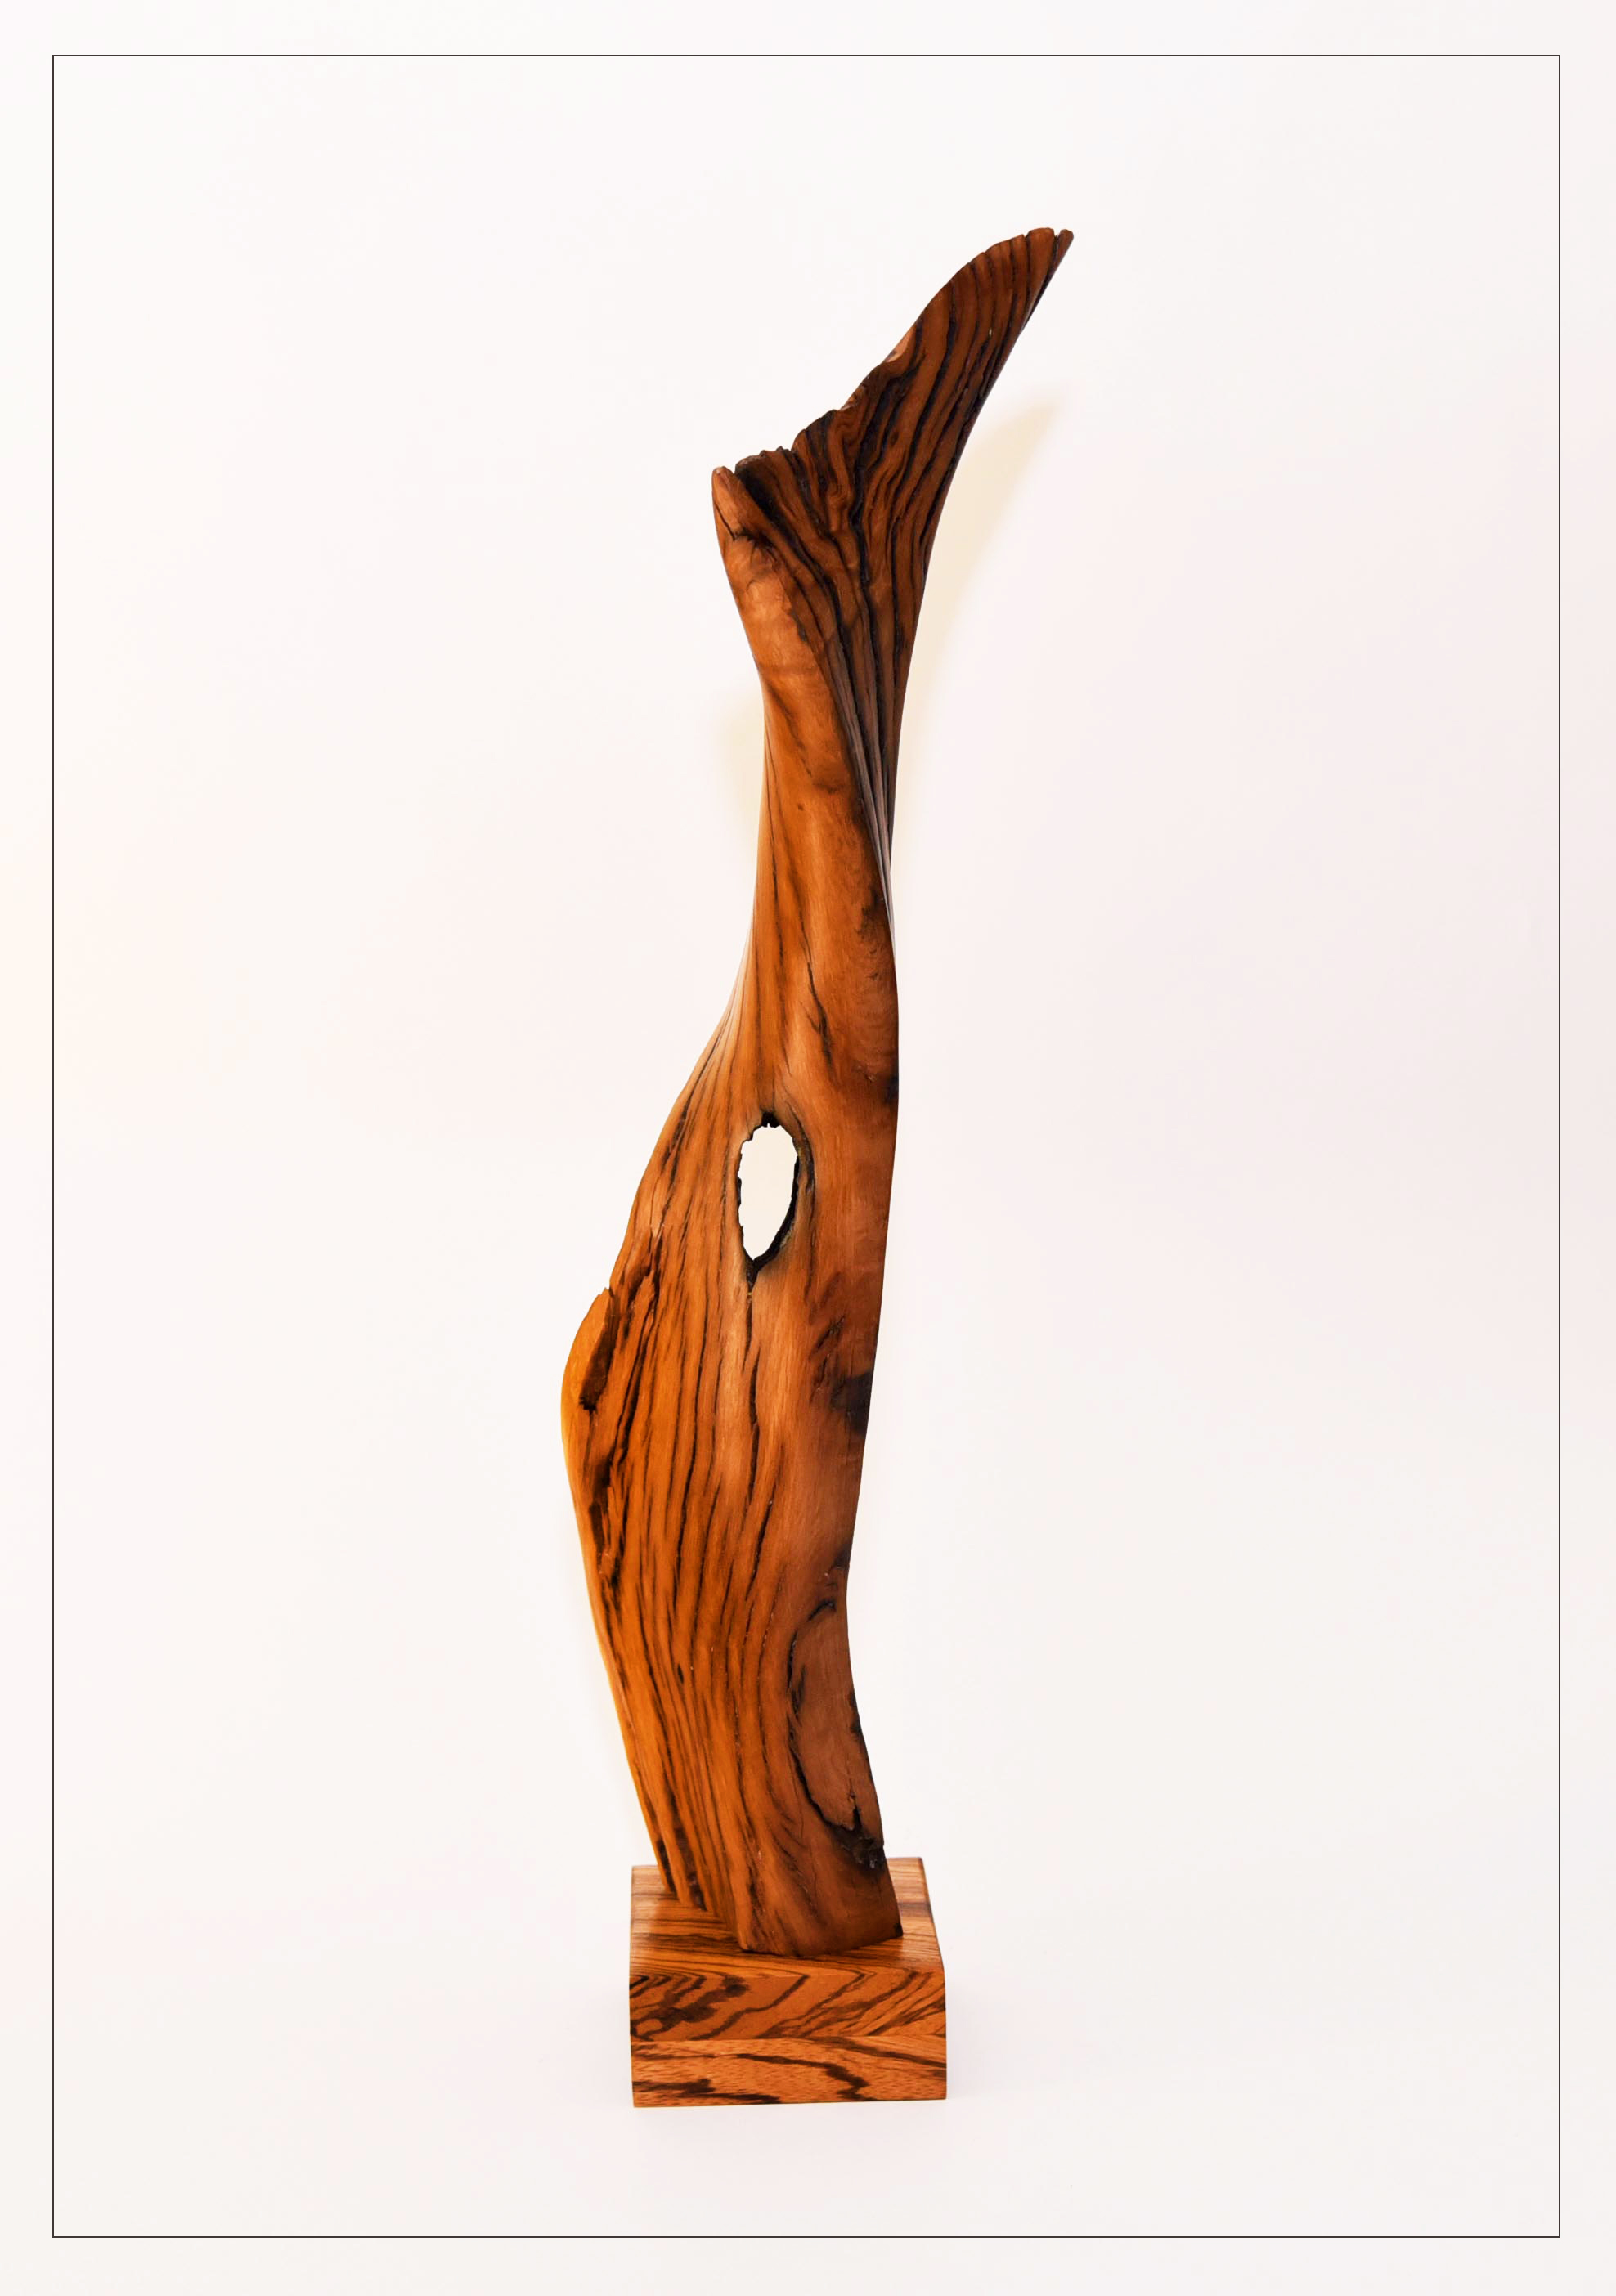 Randal Leek, Untitled, holm oak, zebra wood